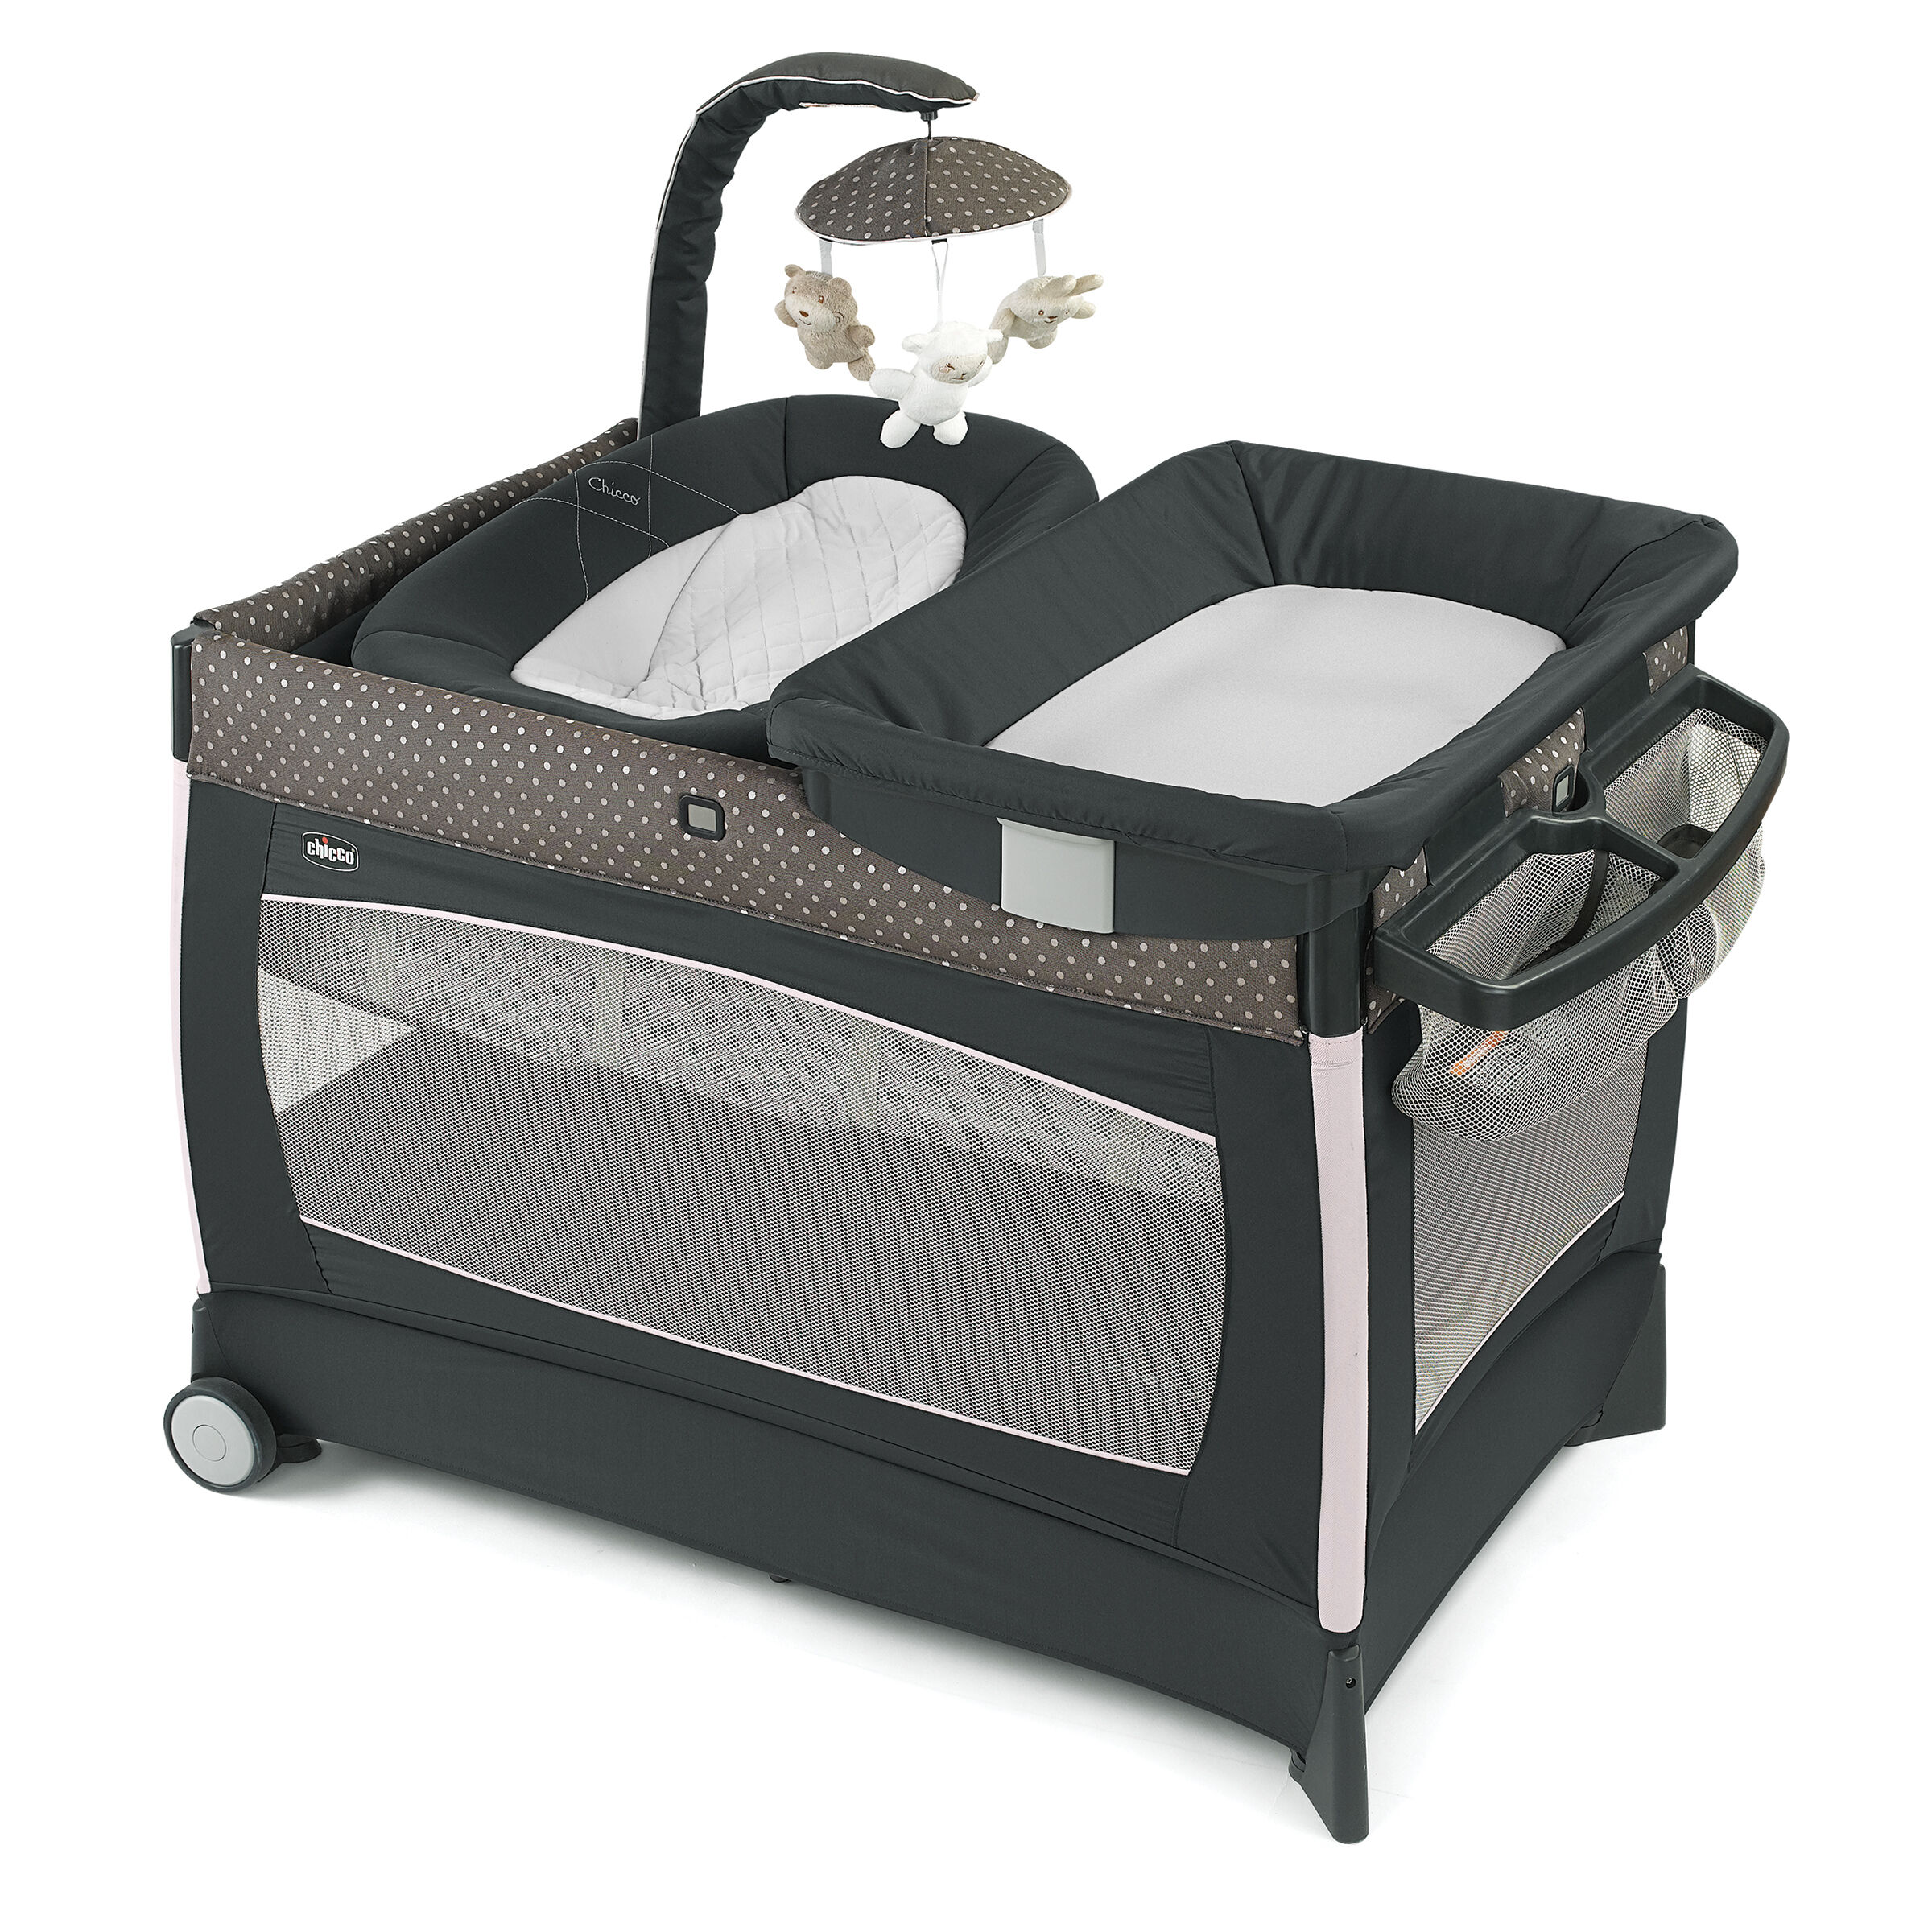 Chicco Stroller On Sale Lullaby Baby Playard Lilla Chicco